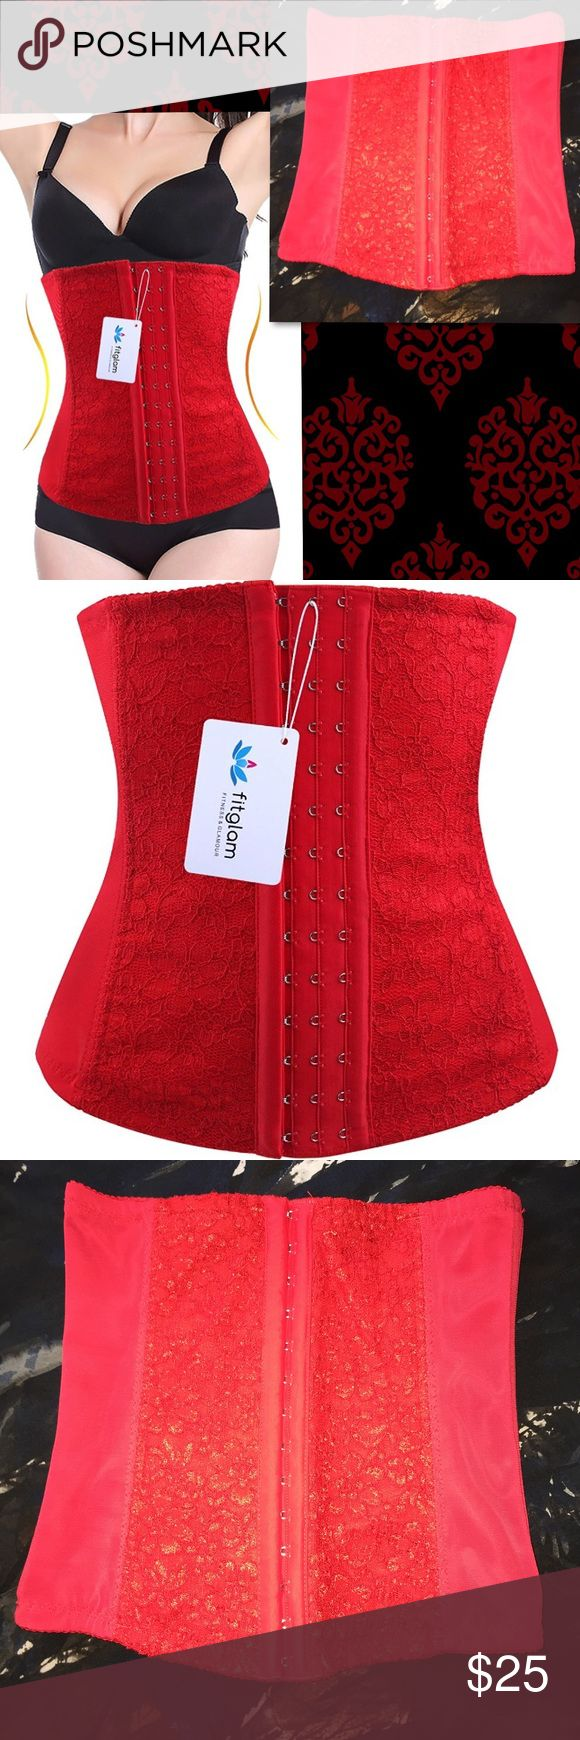 Waist Trainer Corset S in Red Lace Corset in red lace, great for costume parties and as an accent piece over a sleek black sheath dress. Purchased for Halloween dress up, but didn't use at all after removing tags and washing. Designed for waist training to develop a svelte figure. Size: Small. Intimates & Sleepwear Shapewear